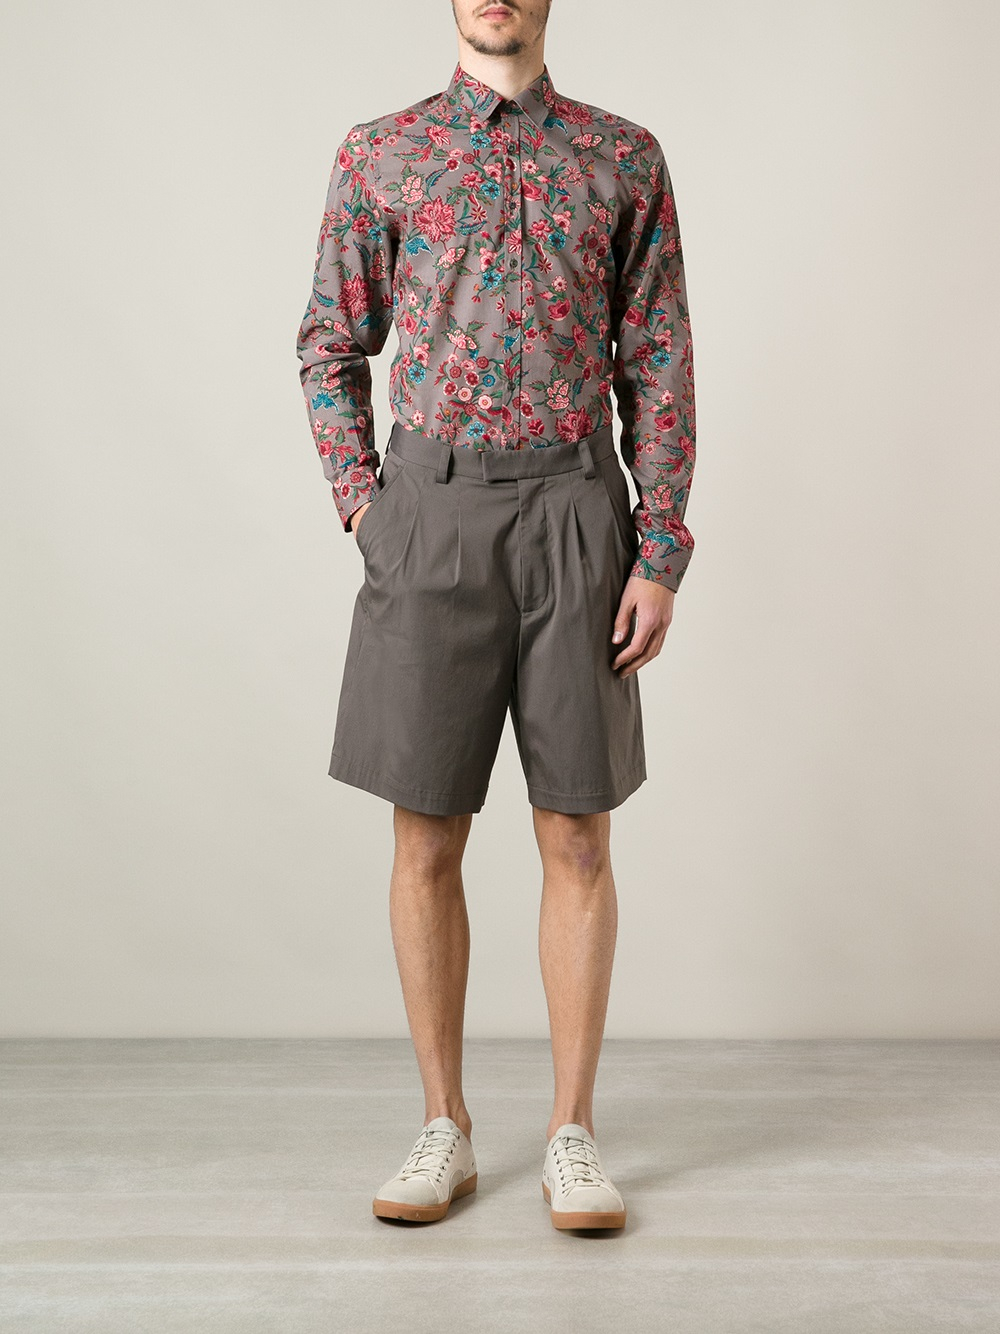 lyst gucci floral print shirt in purple for men